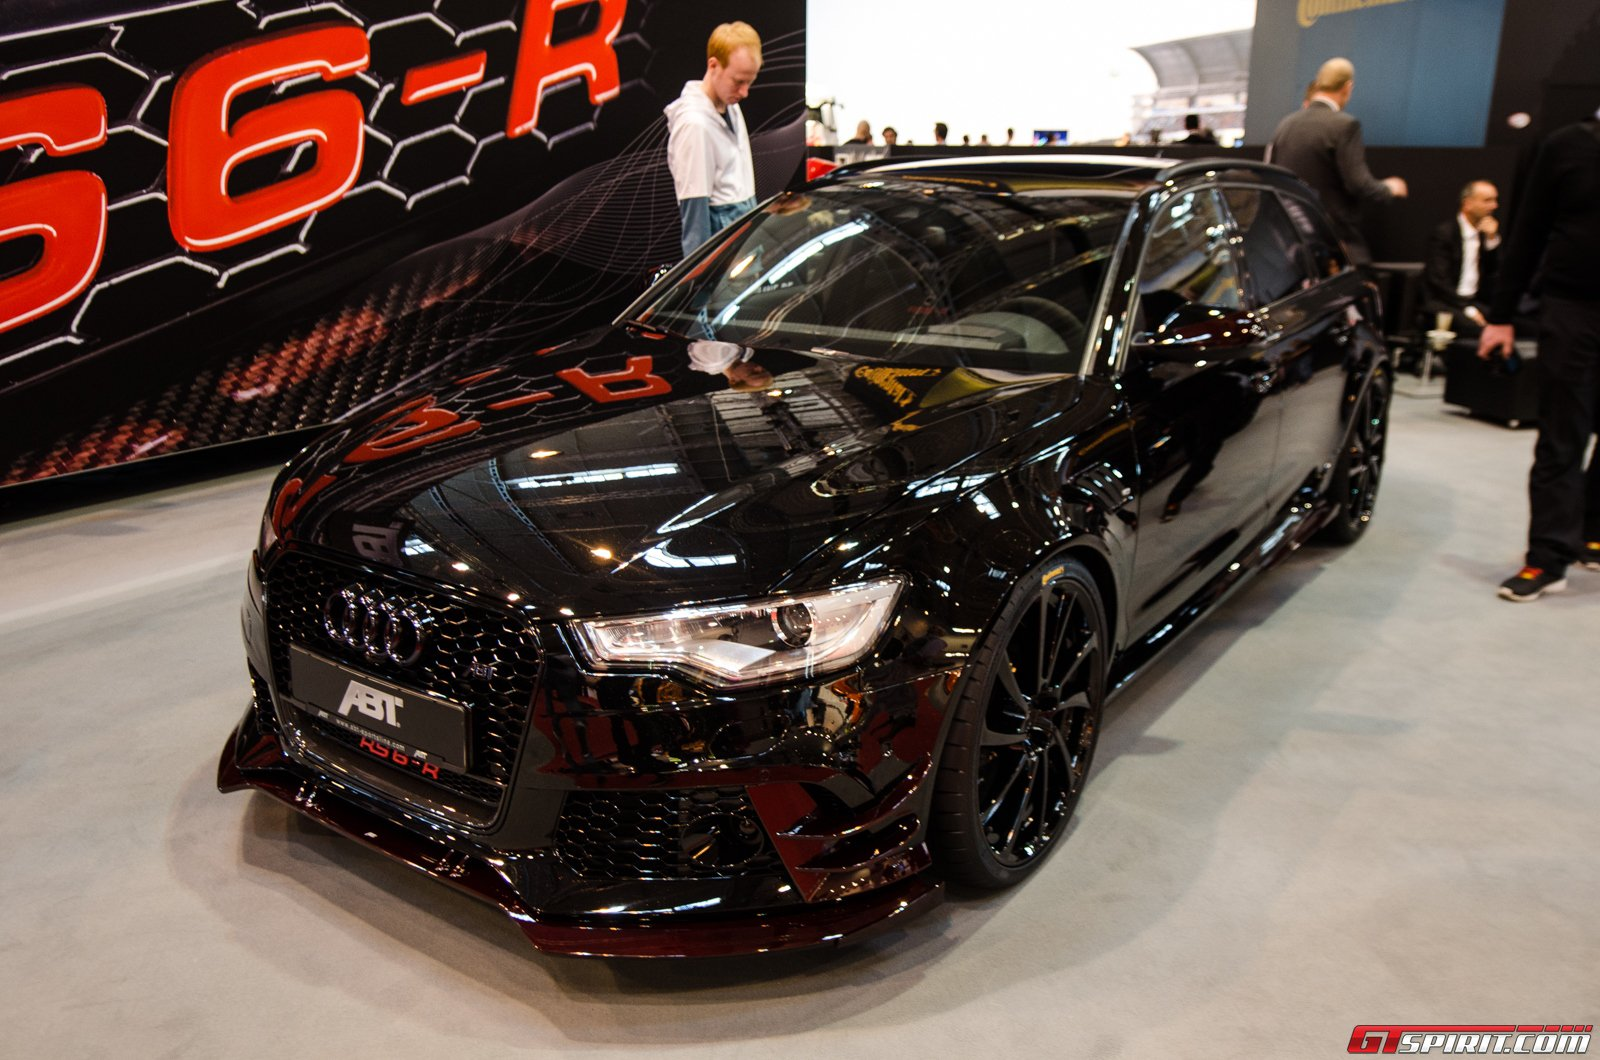 Tuningcars Abt Sportsline At The Essen Motor Show 2014